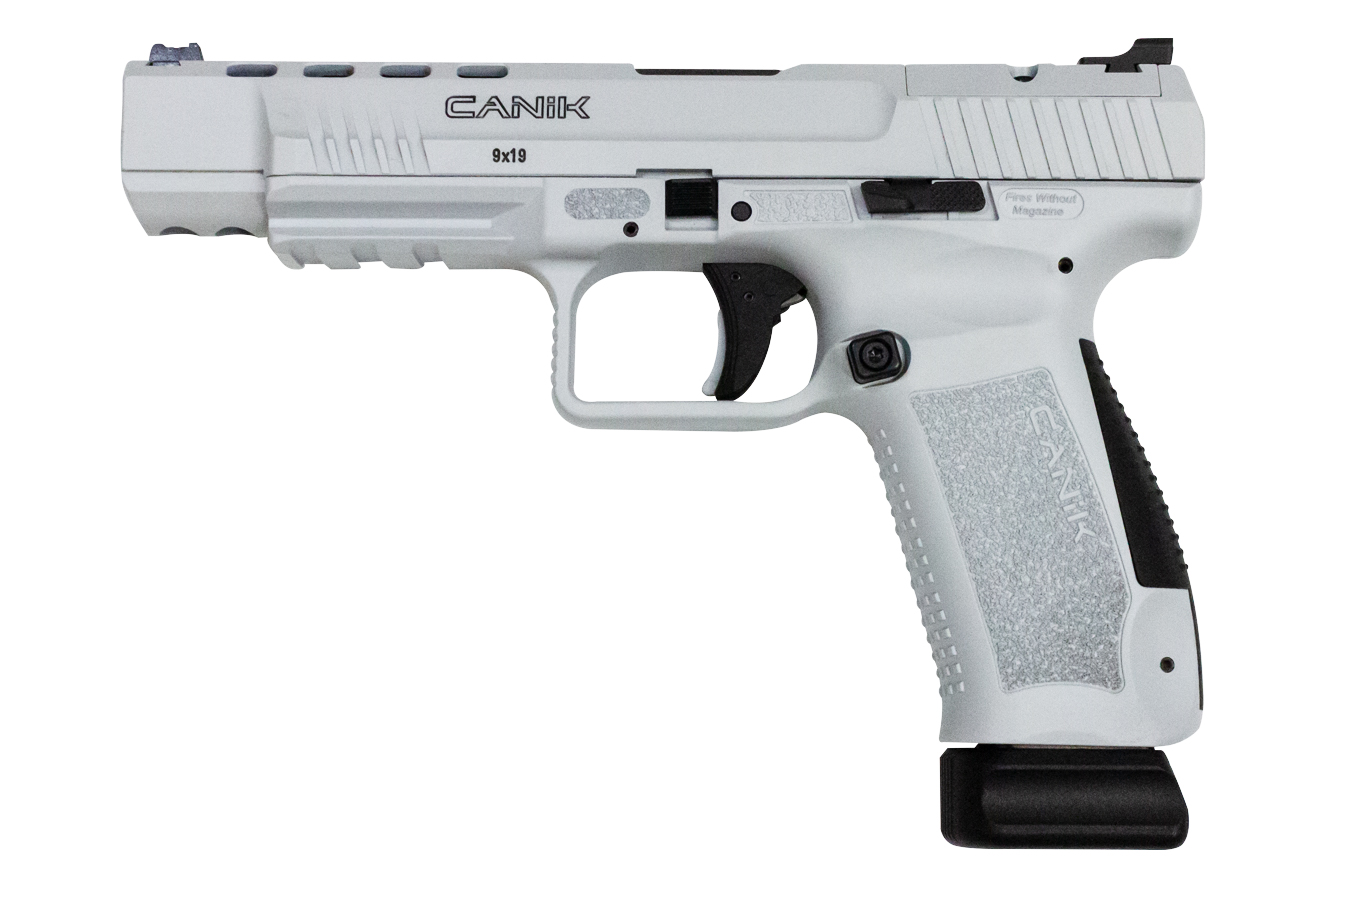 TP9 SFX 9MM PISTOL WITH WHITEOUT CERAKOTE FINISH